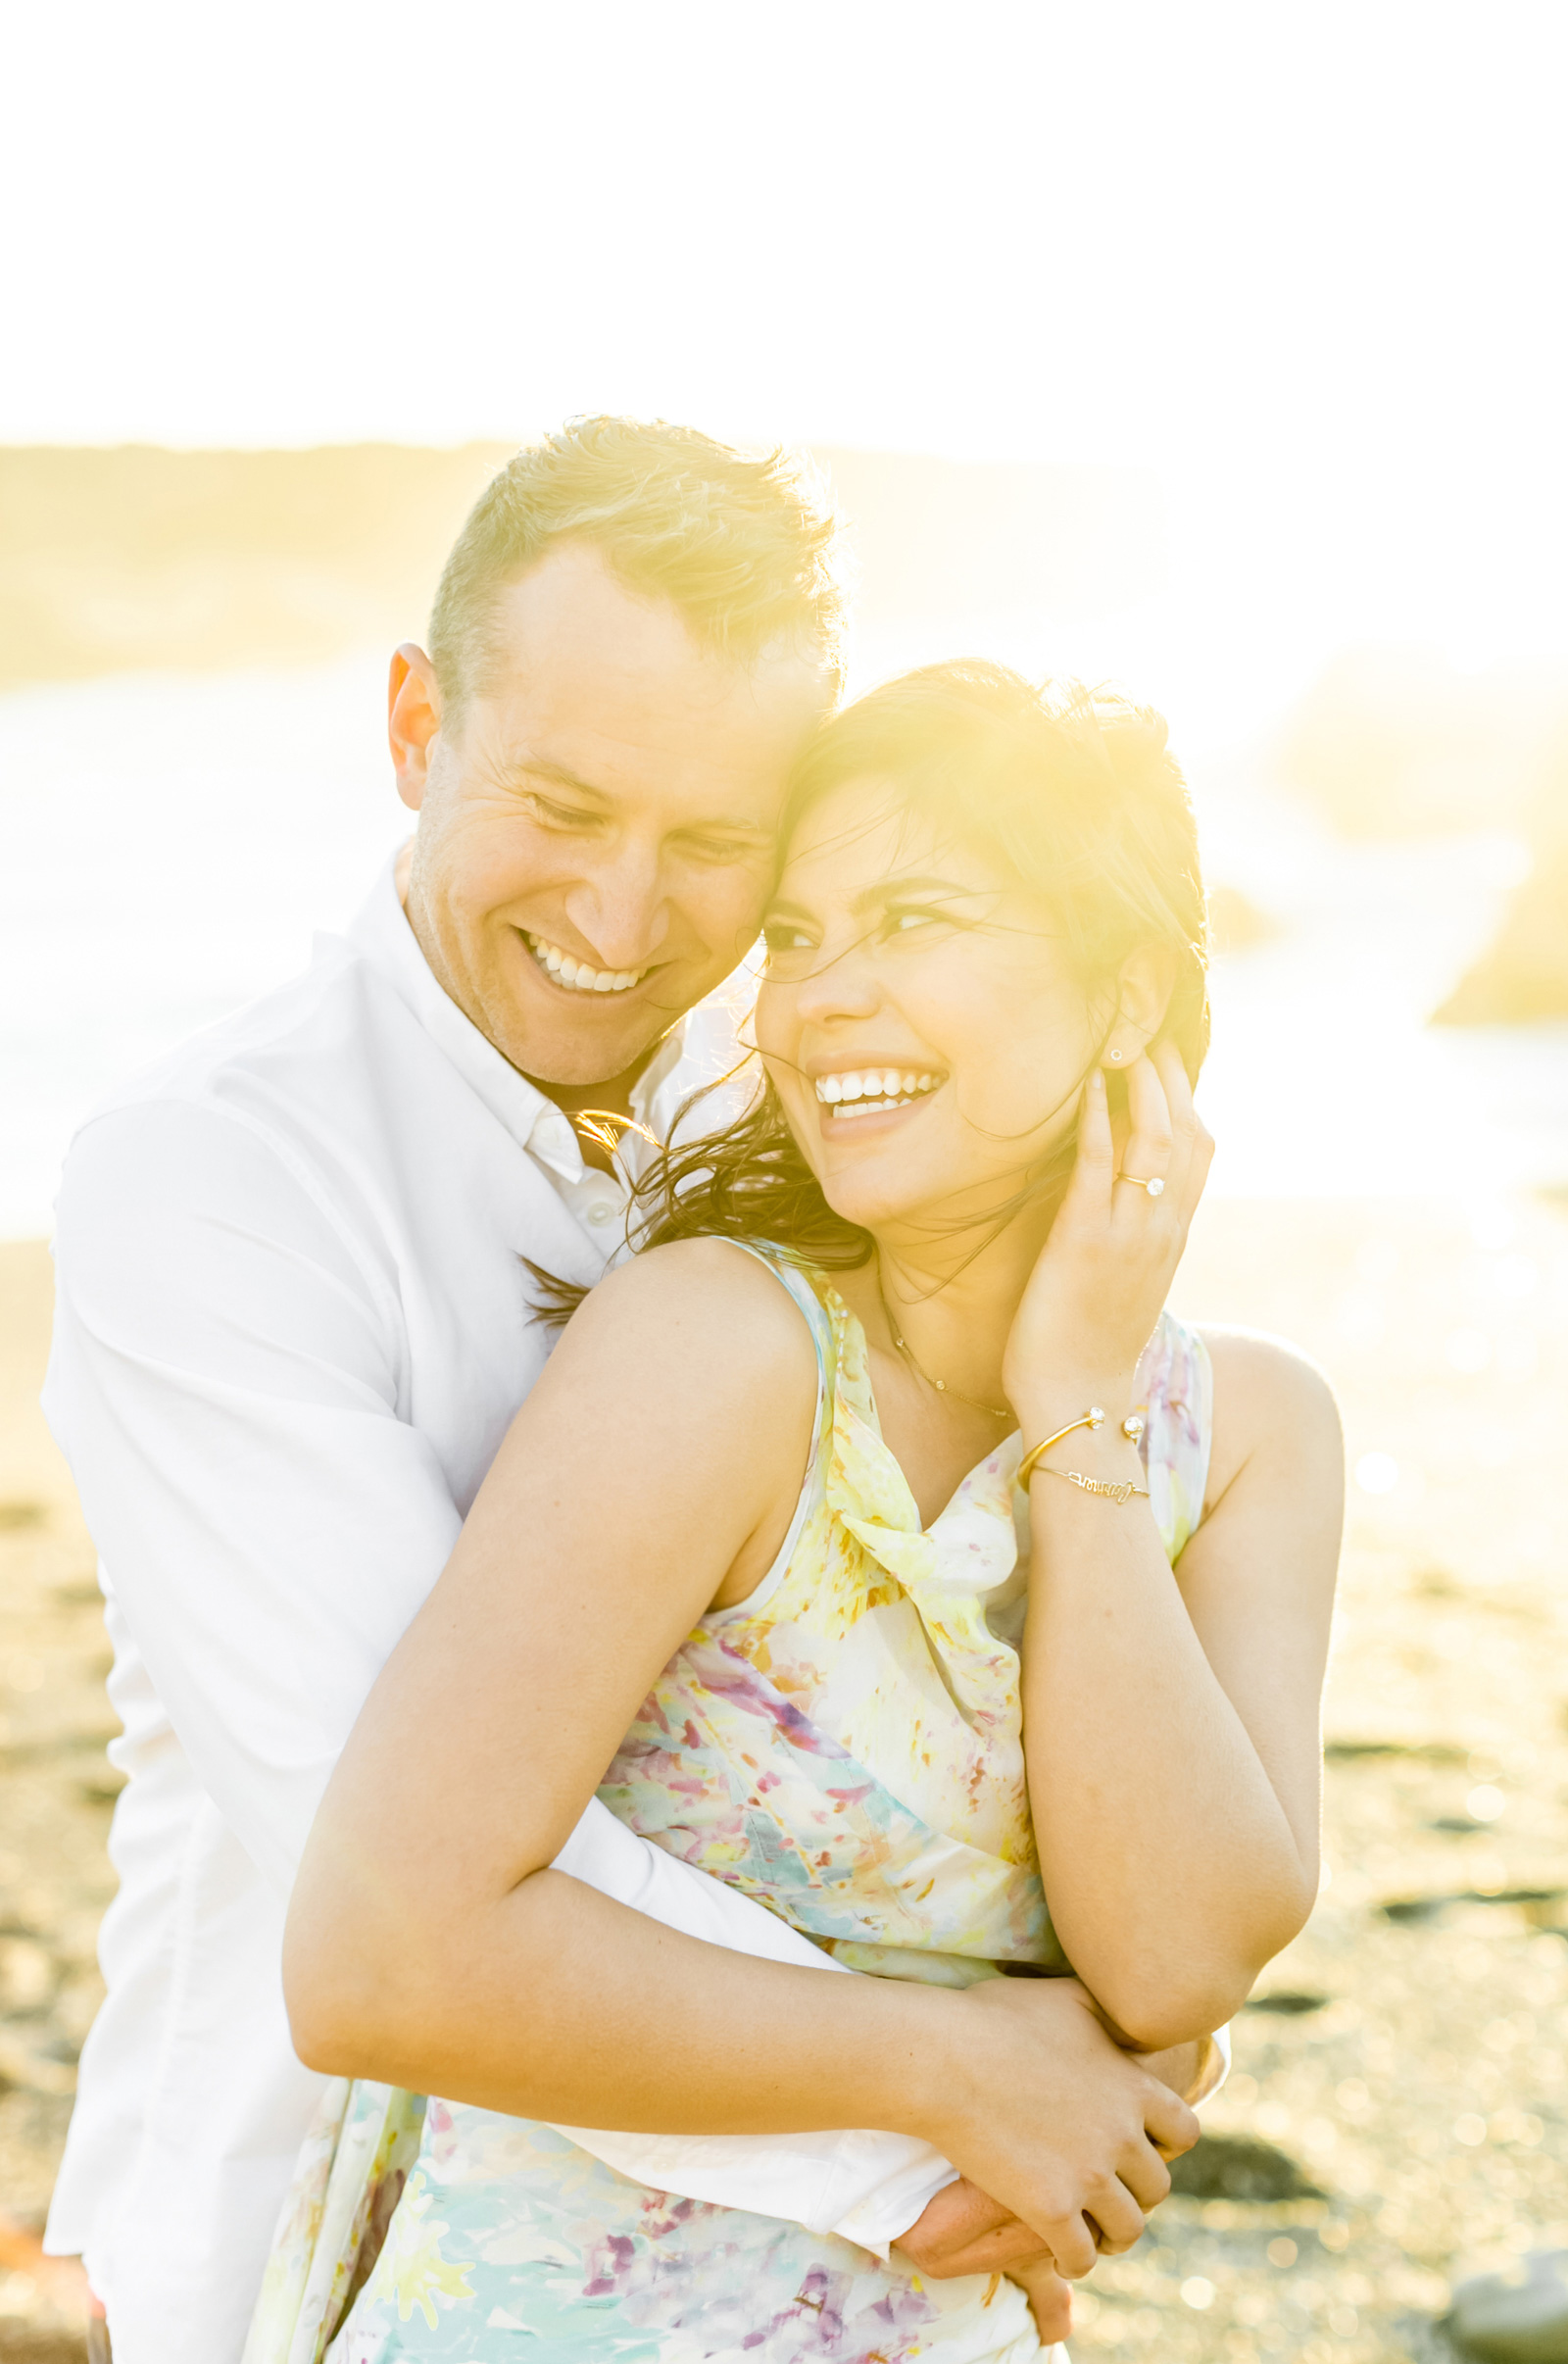 Malibu-Wedding-Photographer-Fine-Art-Photography-Professional-Wedding-Photography-Ocean-Engagement-Natalie-Schutt-Photography_05.jpg